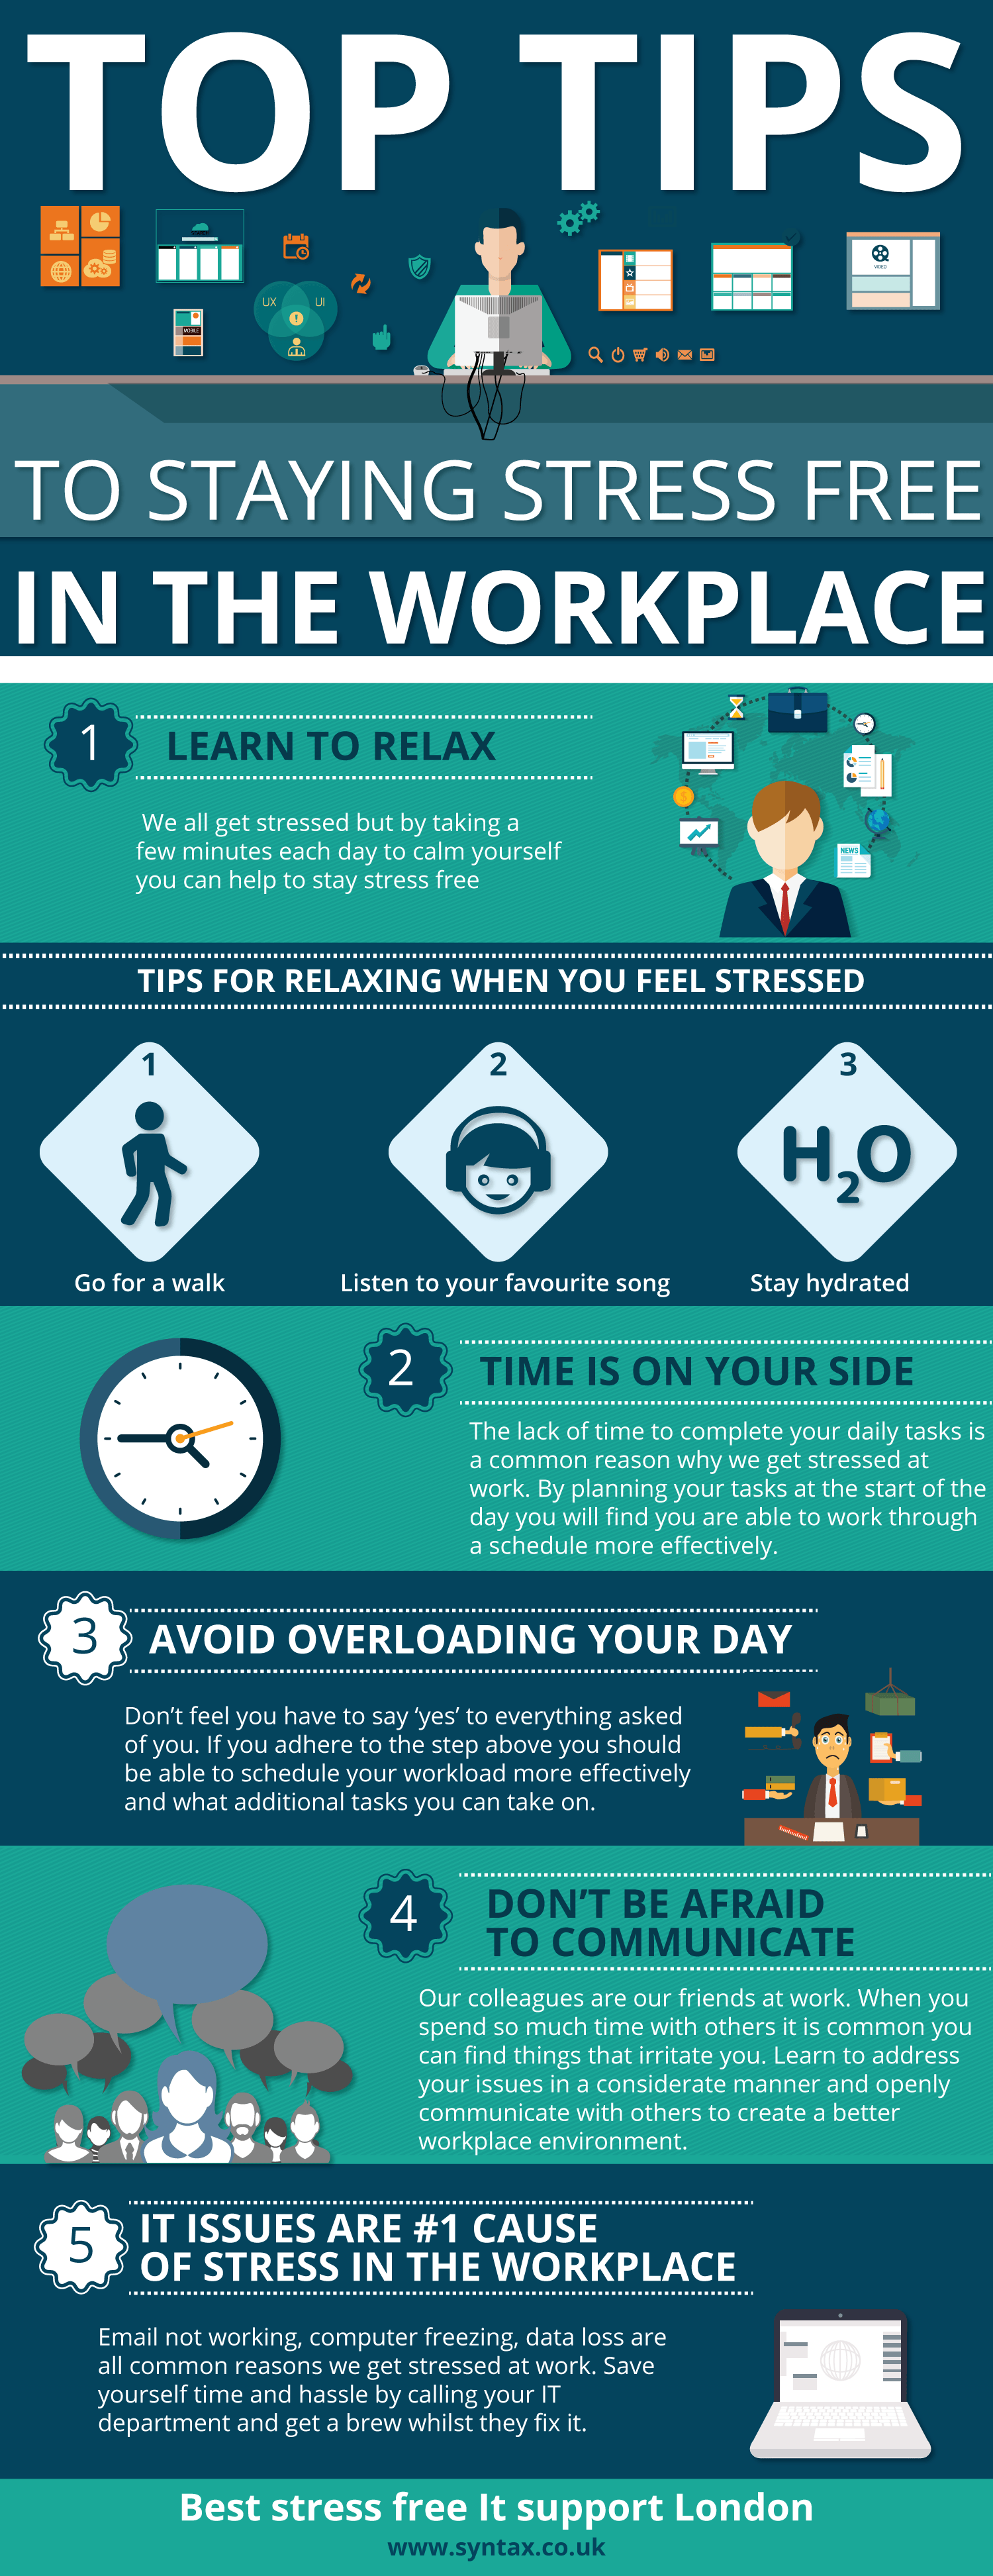 Top tips to staying stress free in the workplace infographic